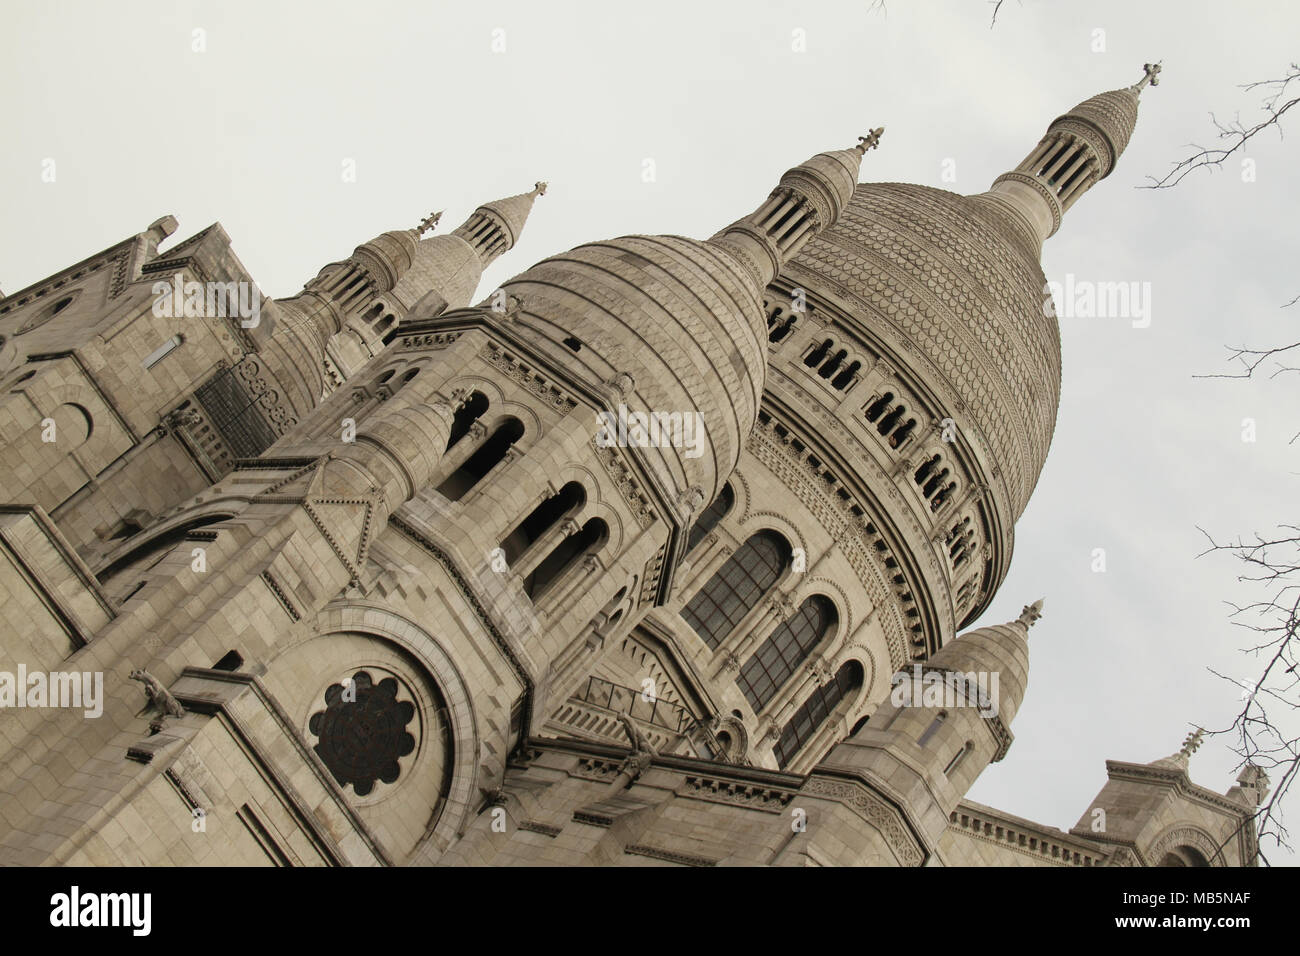 Paris, France -  02 April, 2018. The Sacre Coeur Cathedral in north Paris on 02 April over the Easter weekend. General view of Paris, France. @ David Mbiyu/Alamy Live News - Stock Image